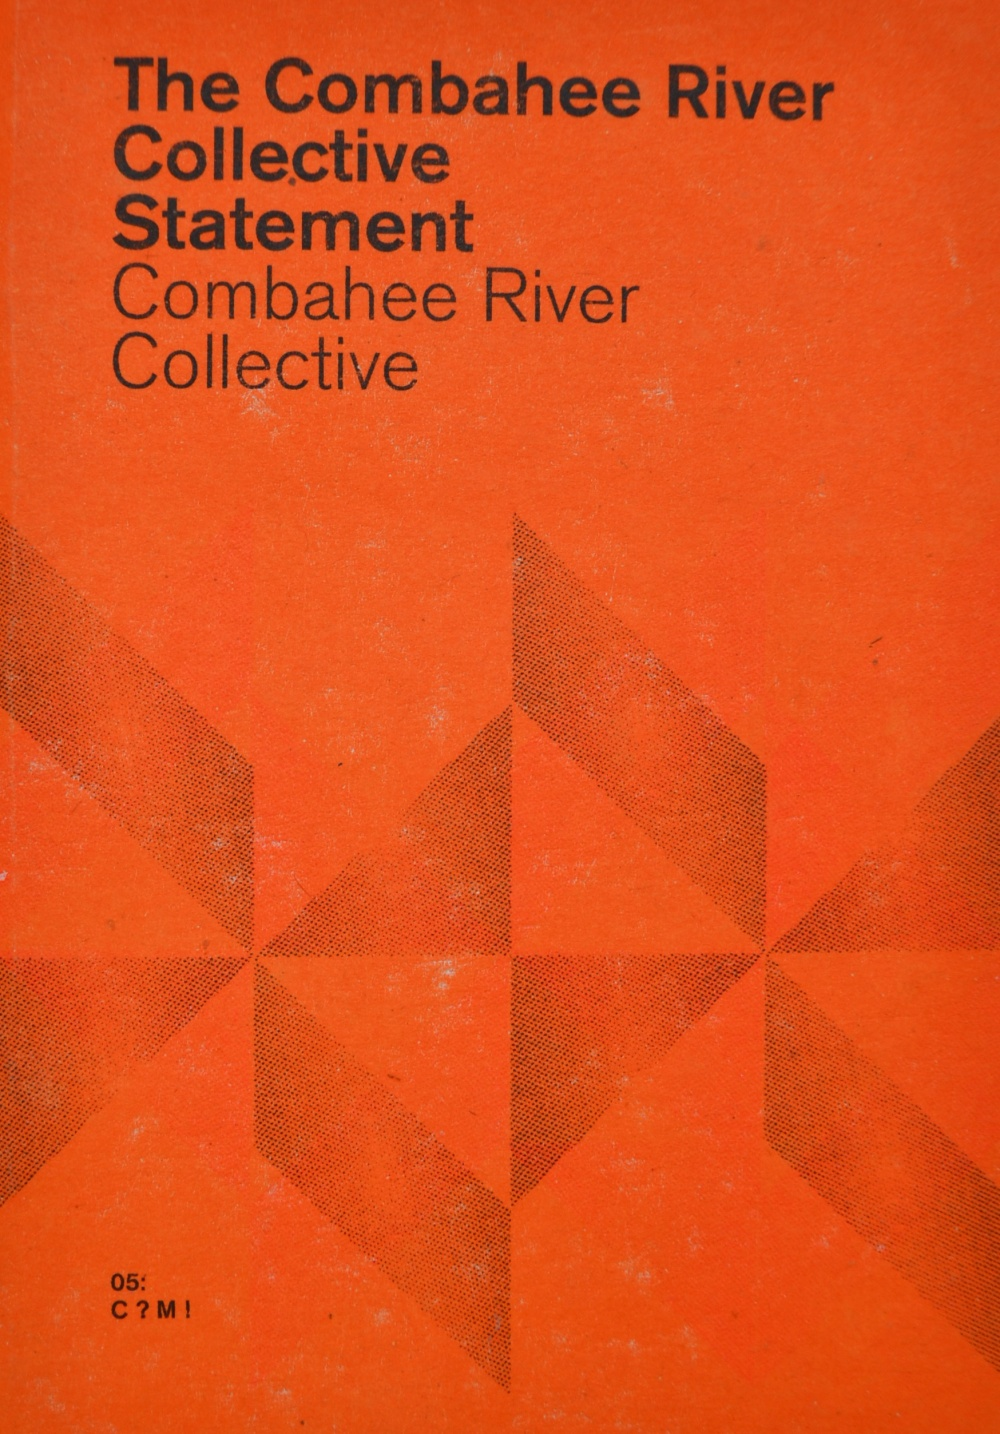 The Combahee River Statement